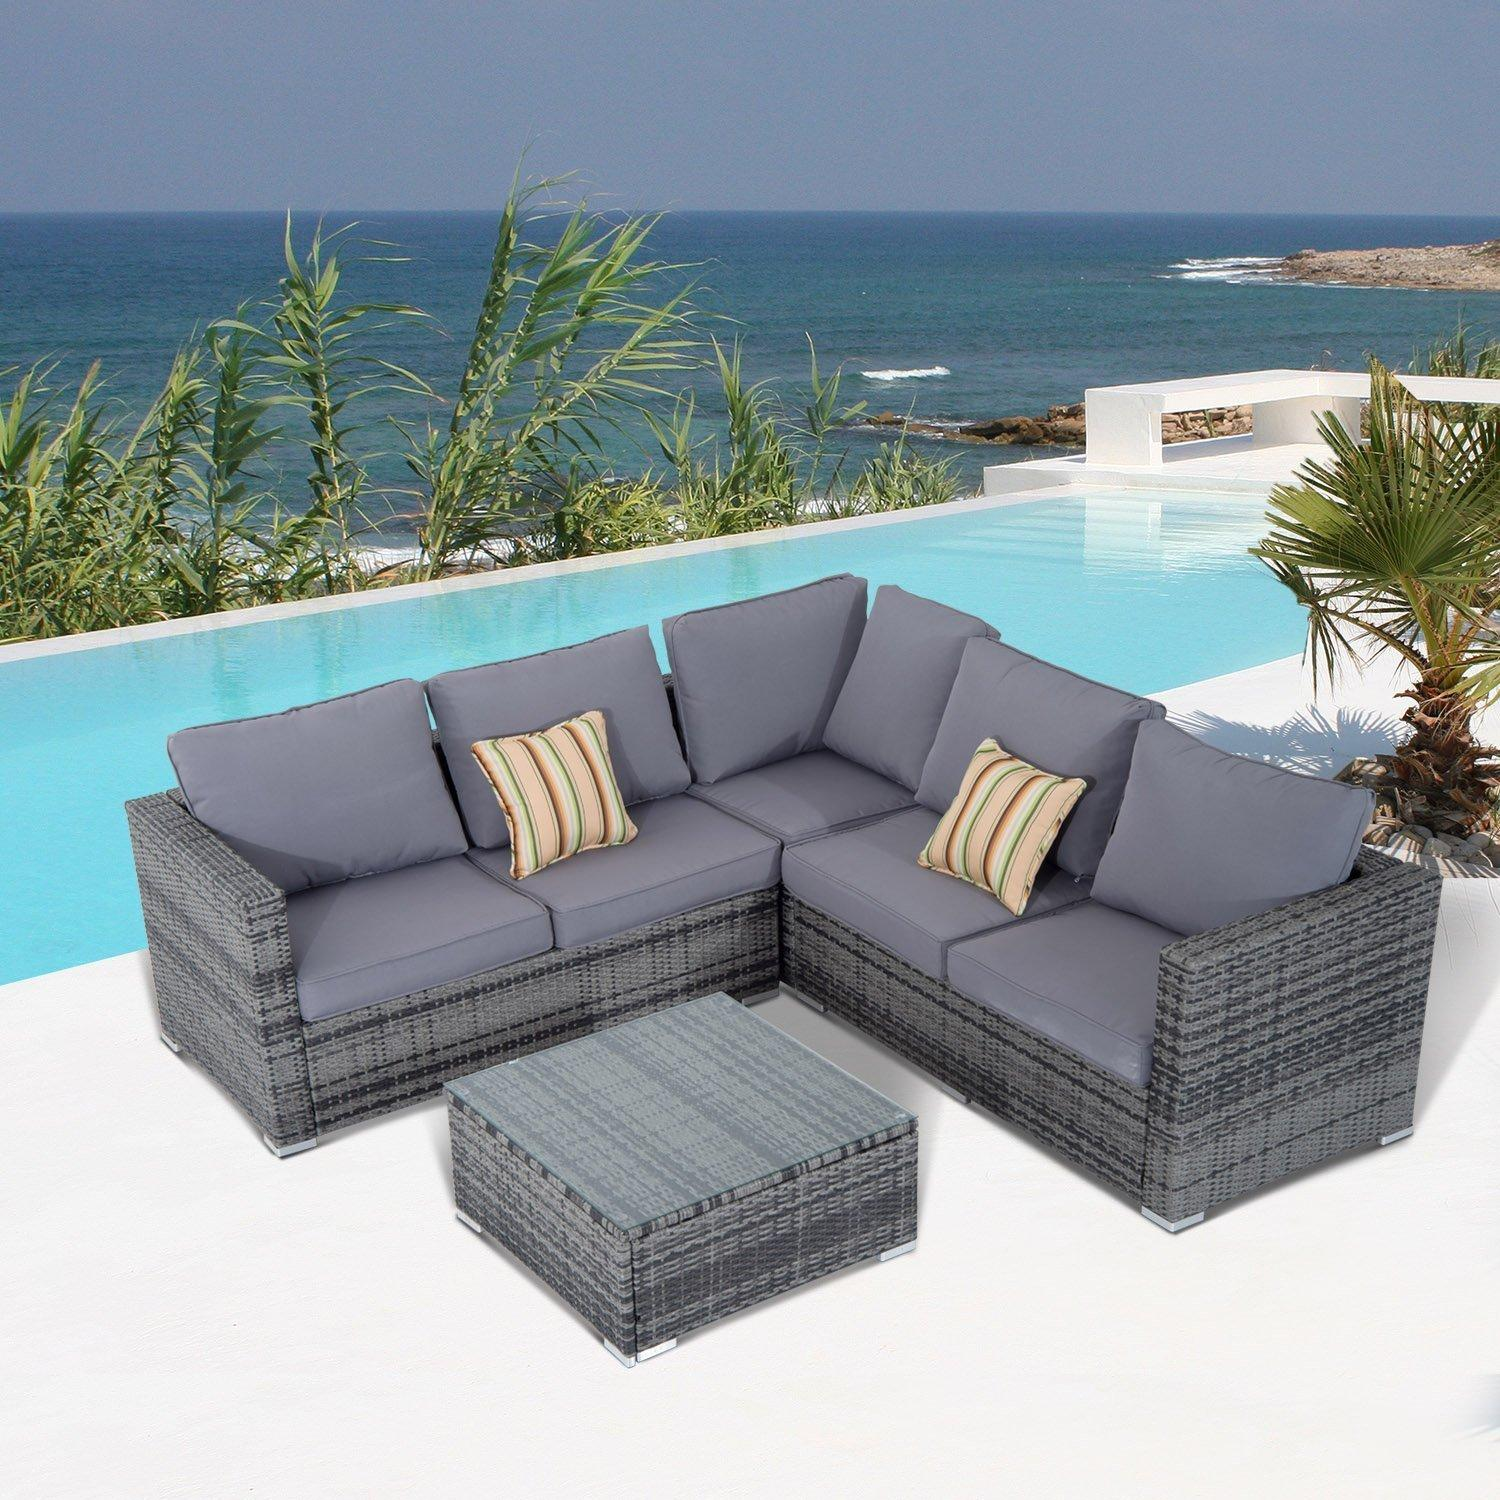 rattan sofa set patio cushioned corner sofa coffee table outdoor garden furniture aluminium frame wickeroutdoor patio garden furniture pe rattan wicker